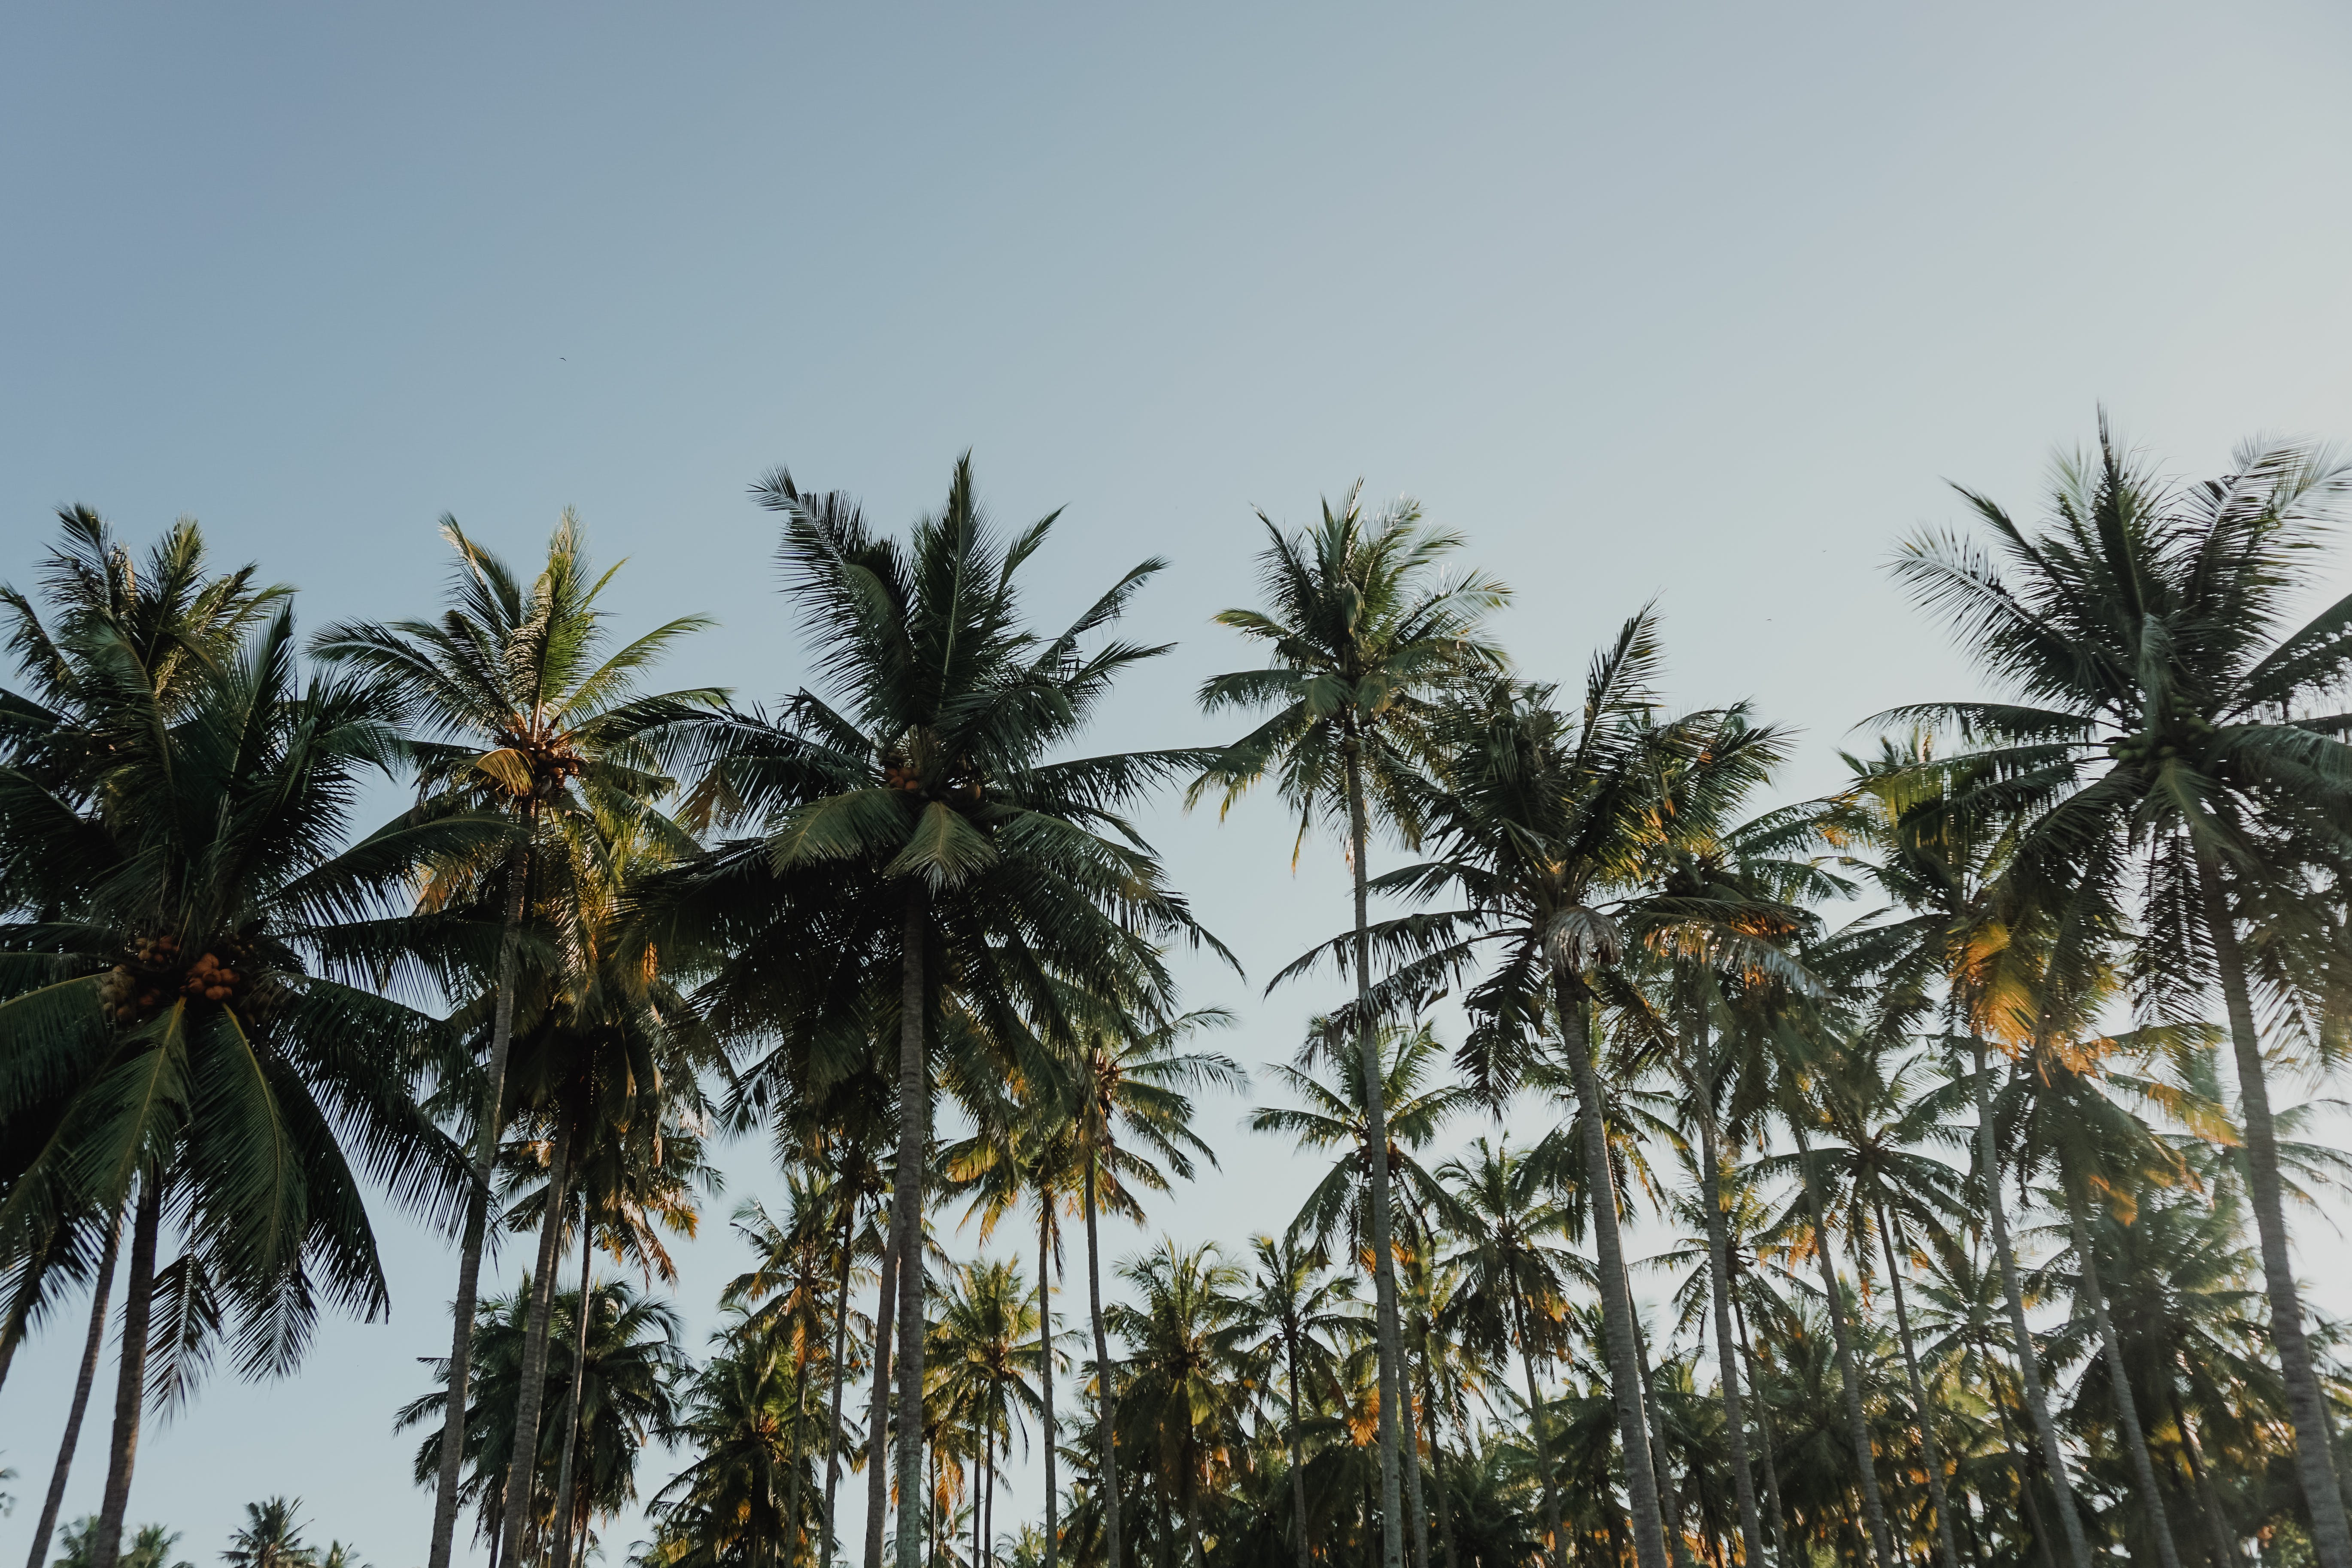 Coconut Trees Under Blue Sky at Daytime